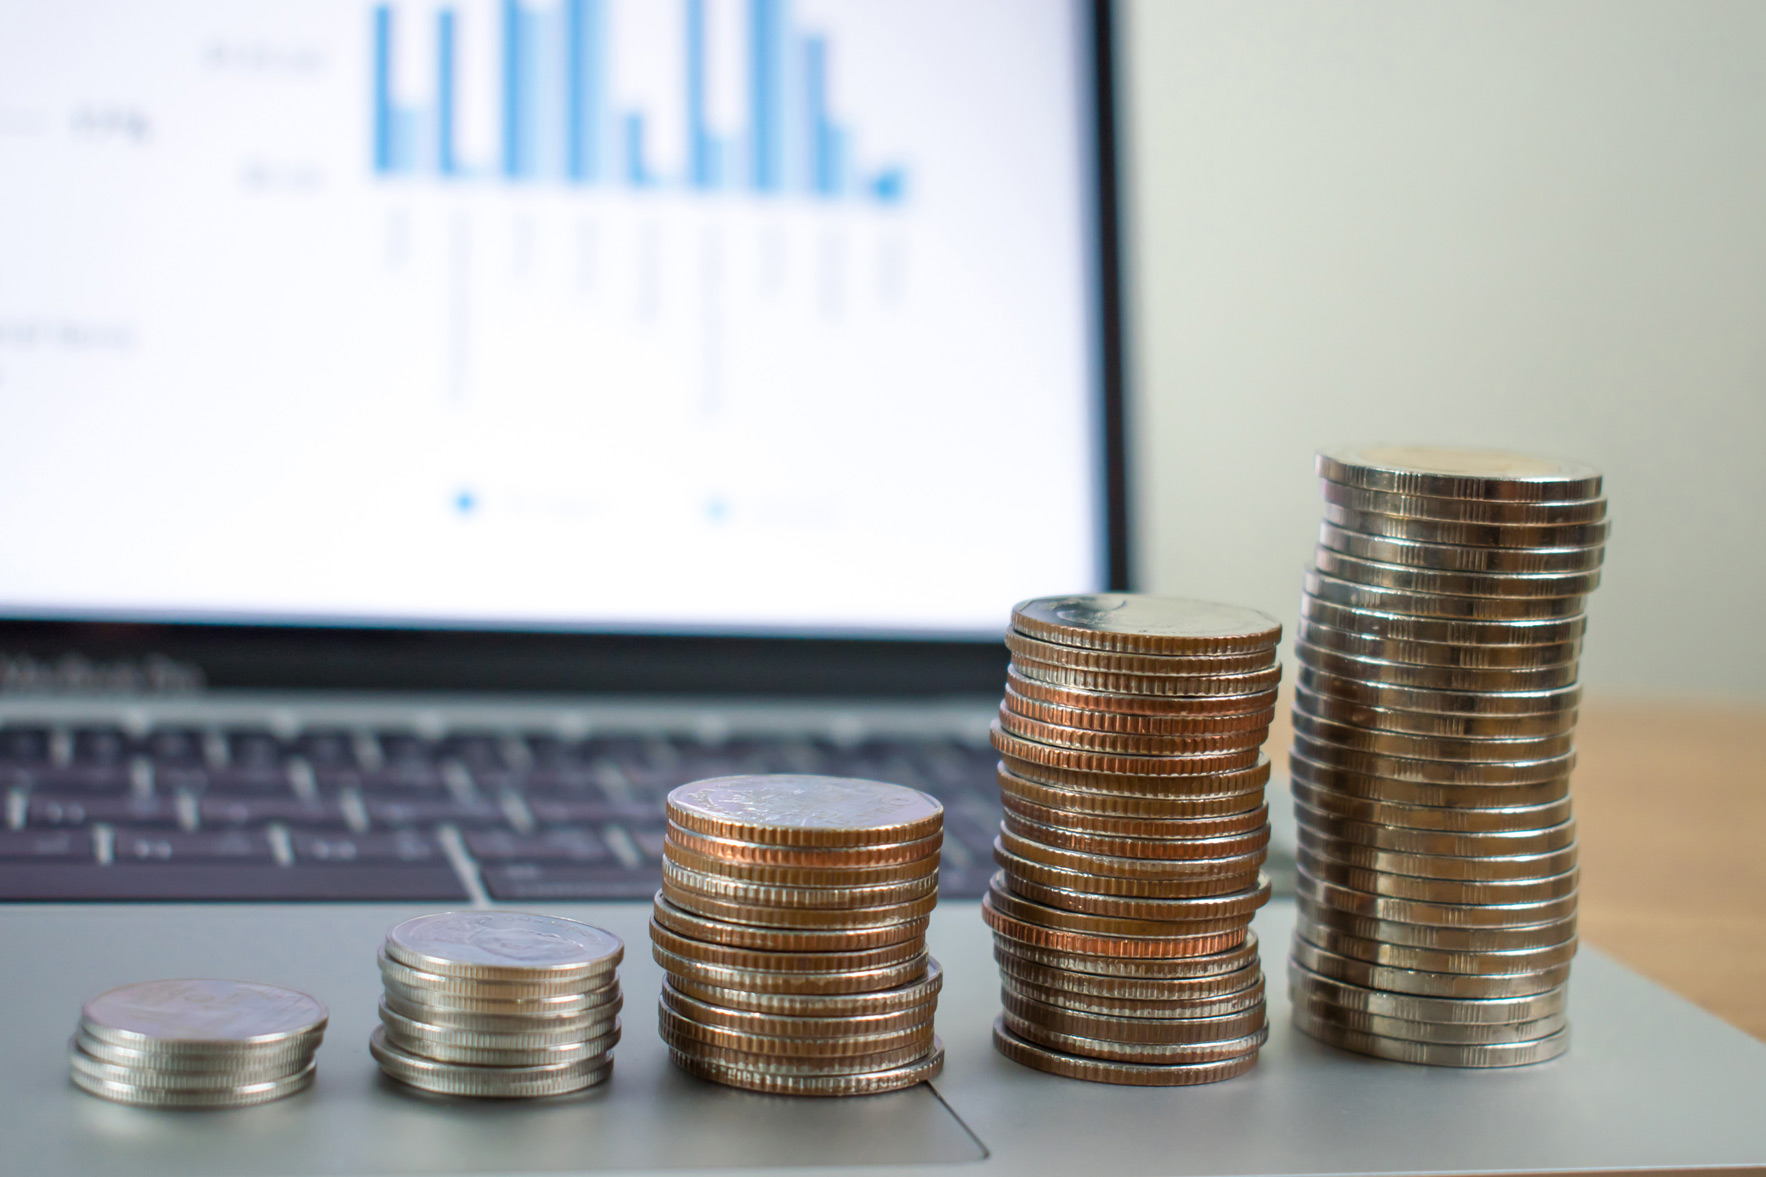 analyzing data and its return on investment